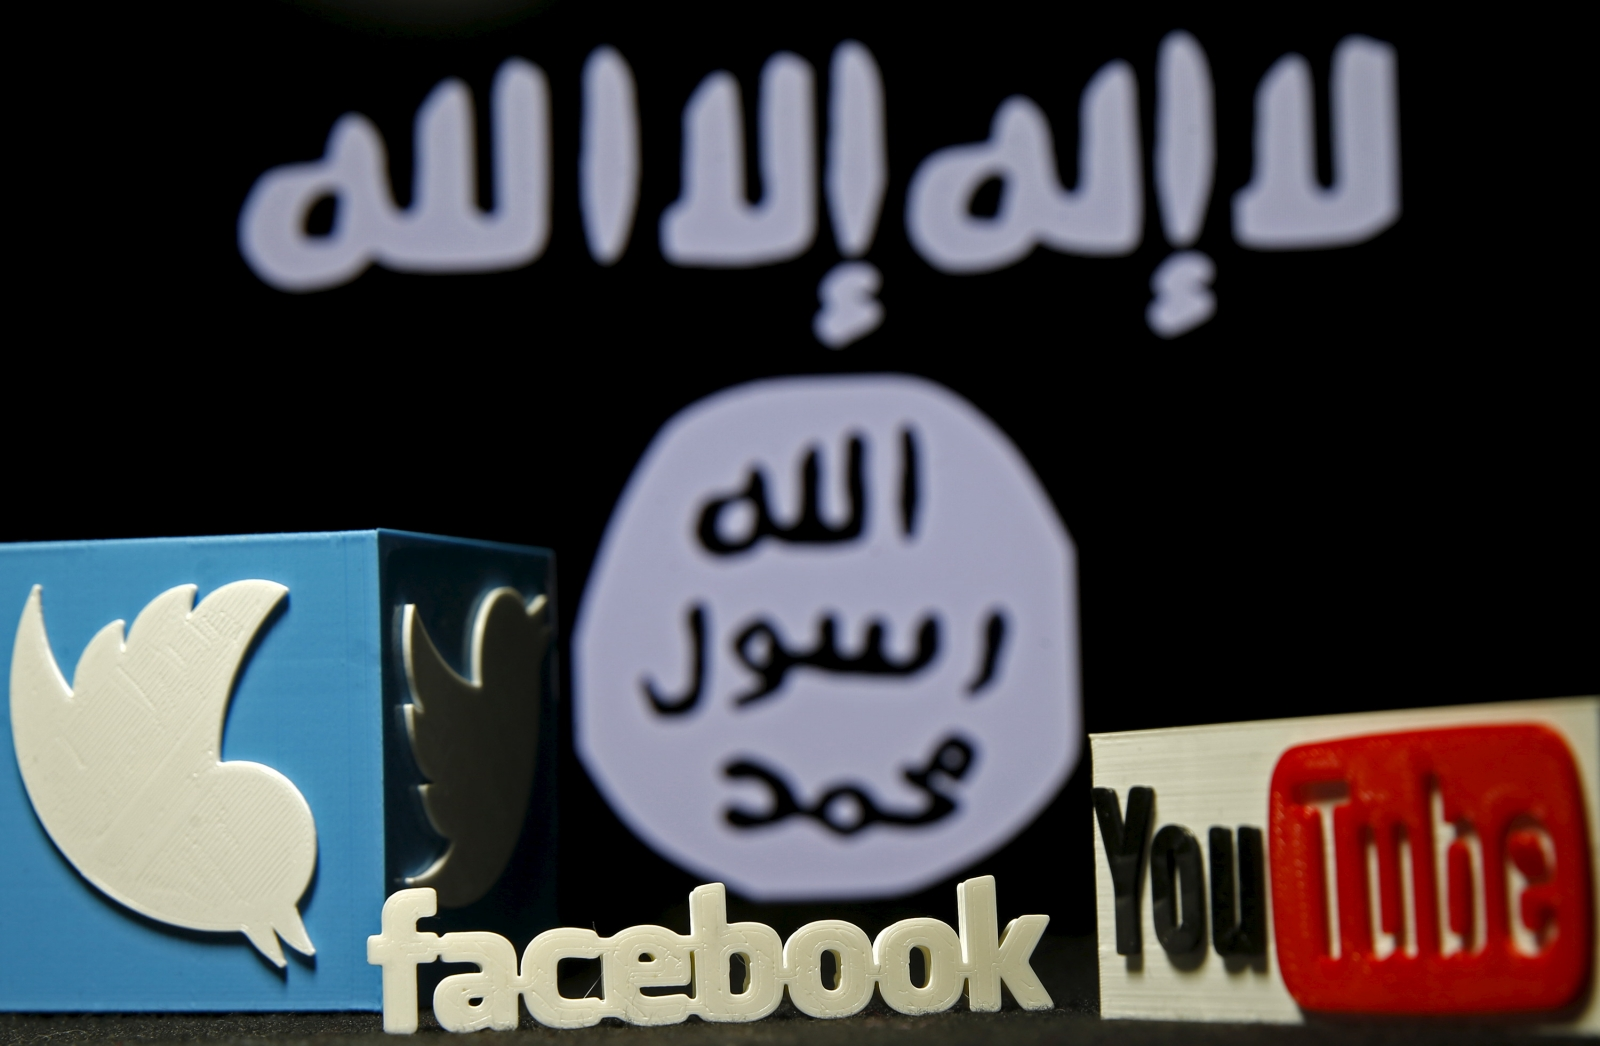 ISIS not particular in choosing encrypted messaging apps - almost any one will do